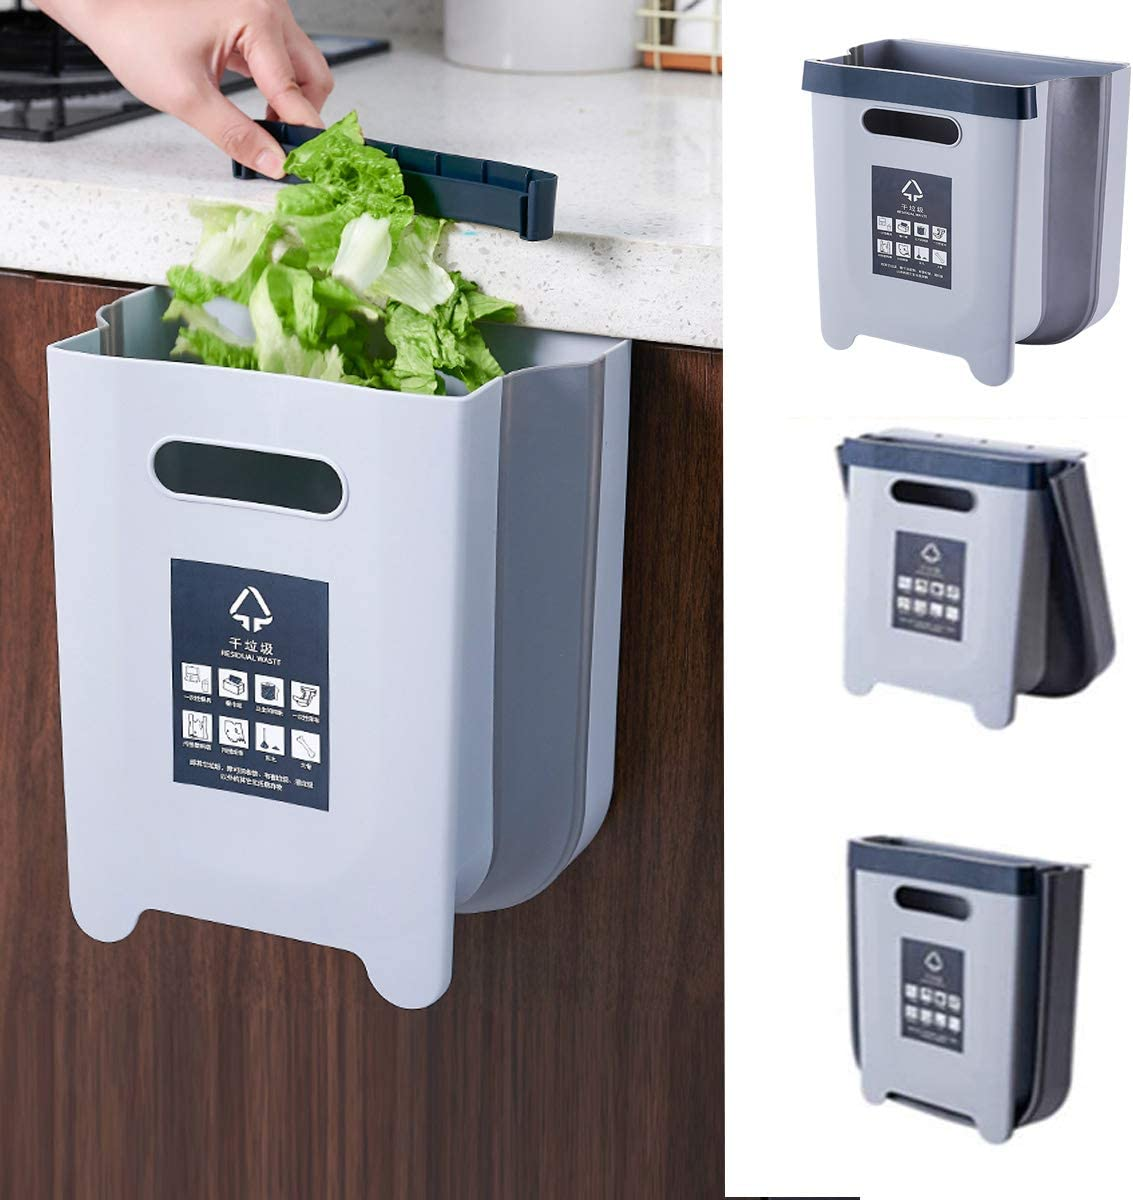 Kitchen Hanging Trash Can, Collapsible Trash Bin Small Compact Garbage Can Attached to Cabinet Door Kitchen Drawer Bedroom Dorm Room Car Waste Bin - 9L/2.3 Gallon (Light Gray)